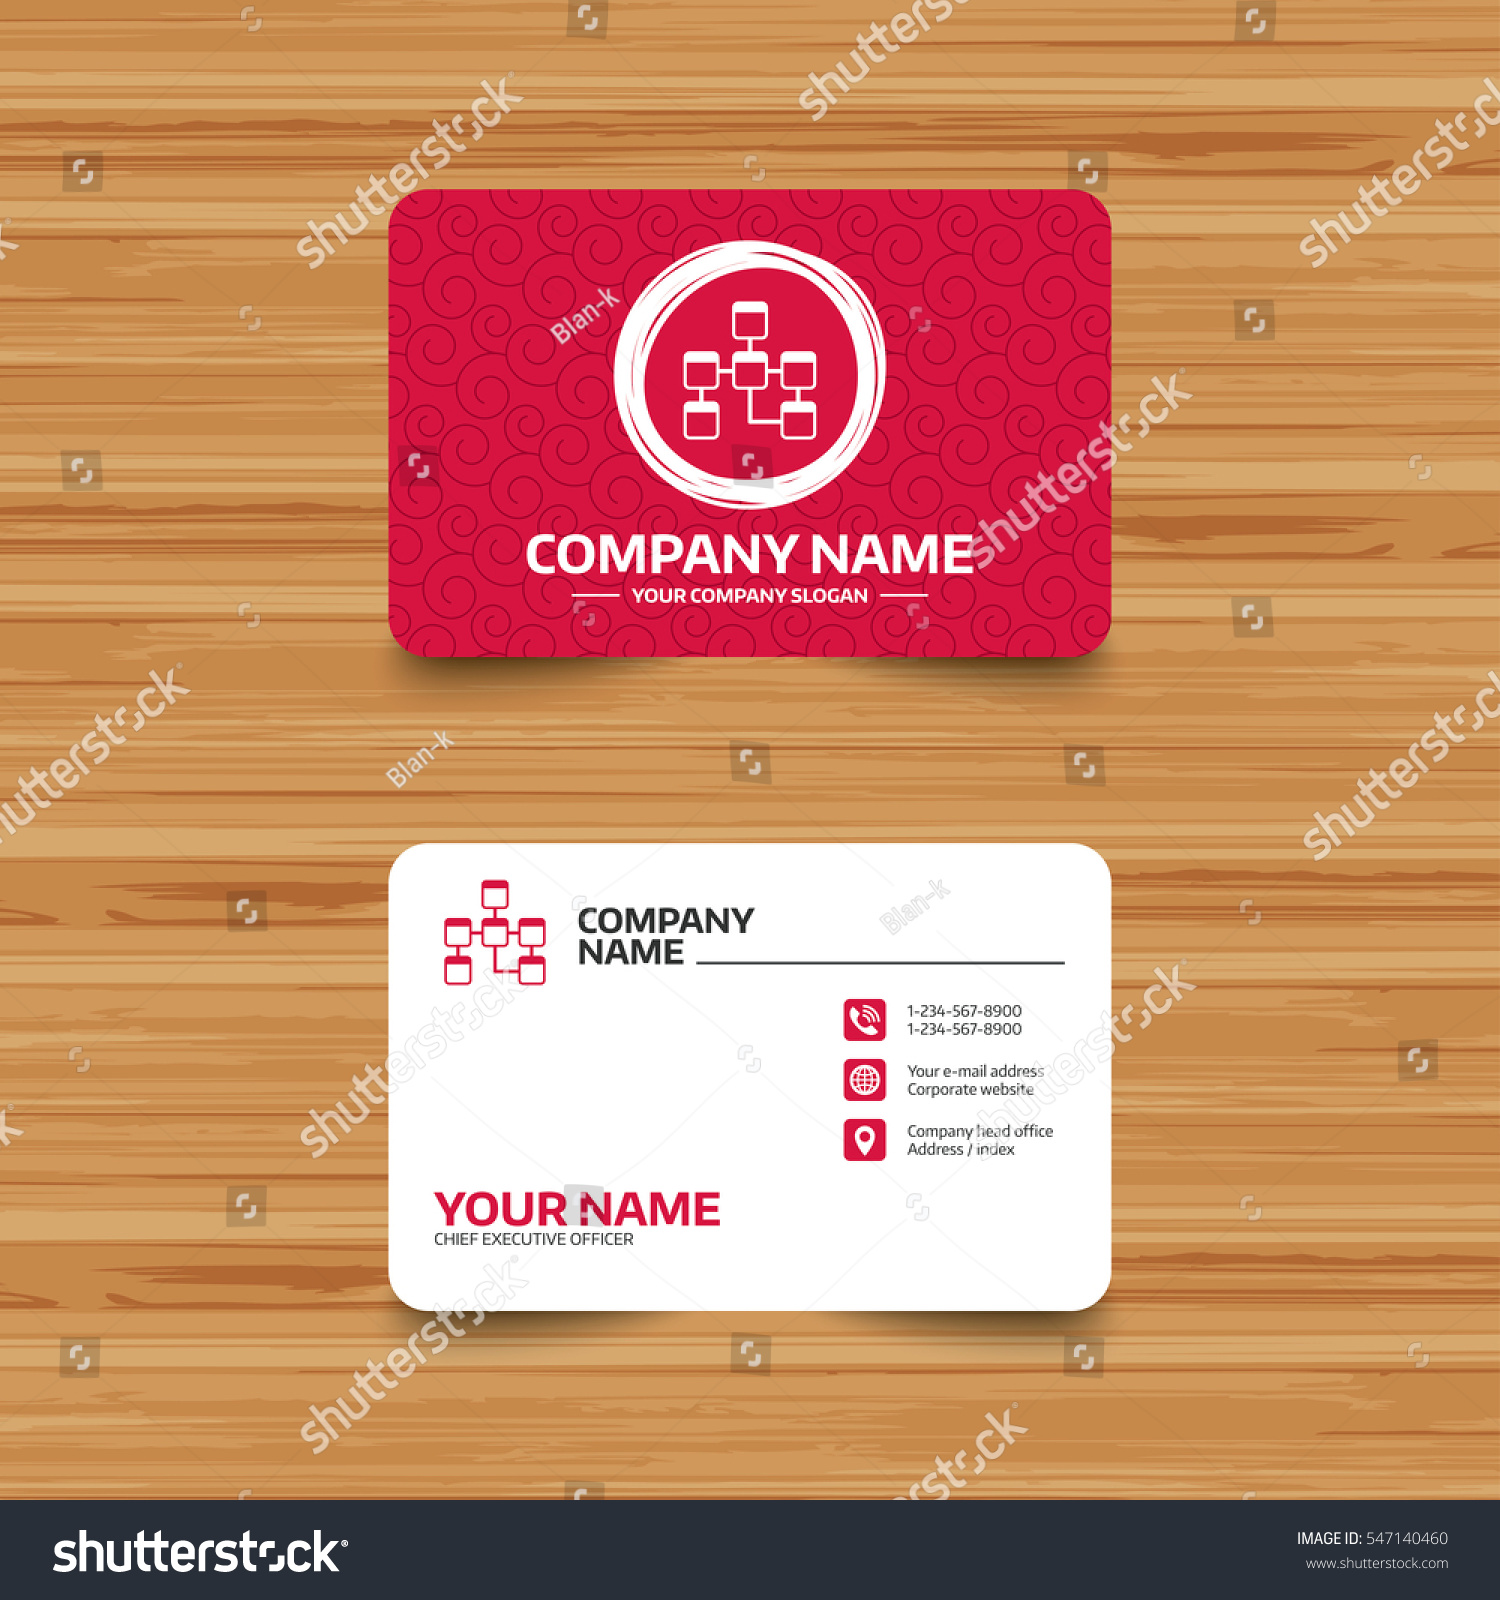 Business card template texture database sign stock vector business card template with texture database sign icon relational database schema symbol phone magicingreecefo Choice Image